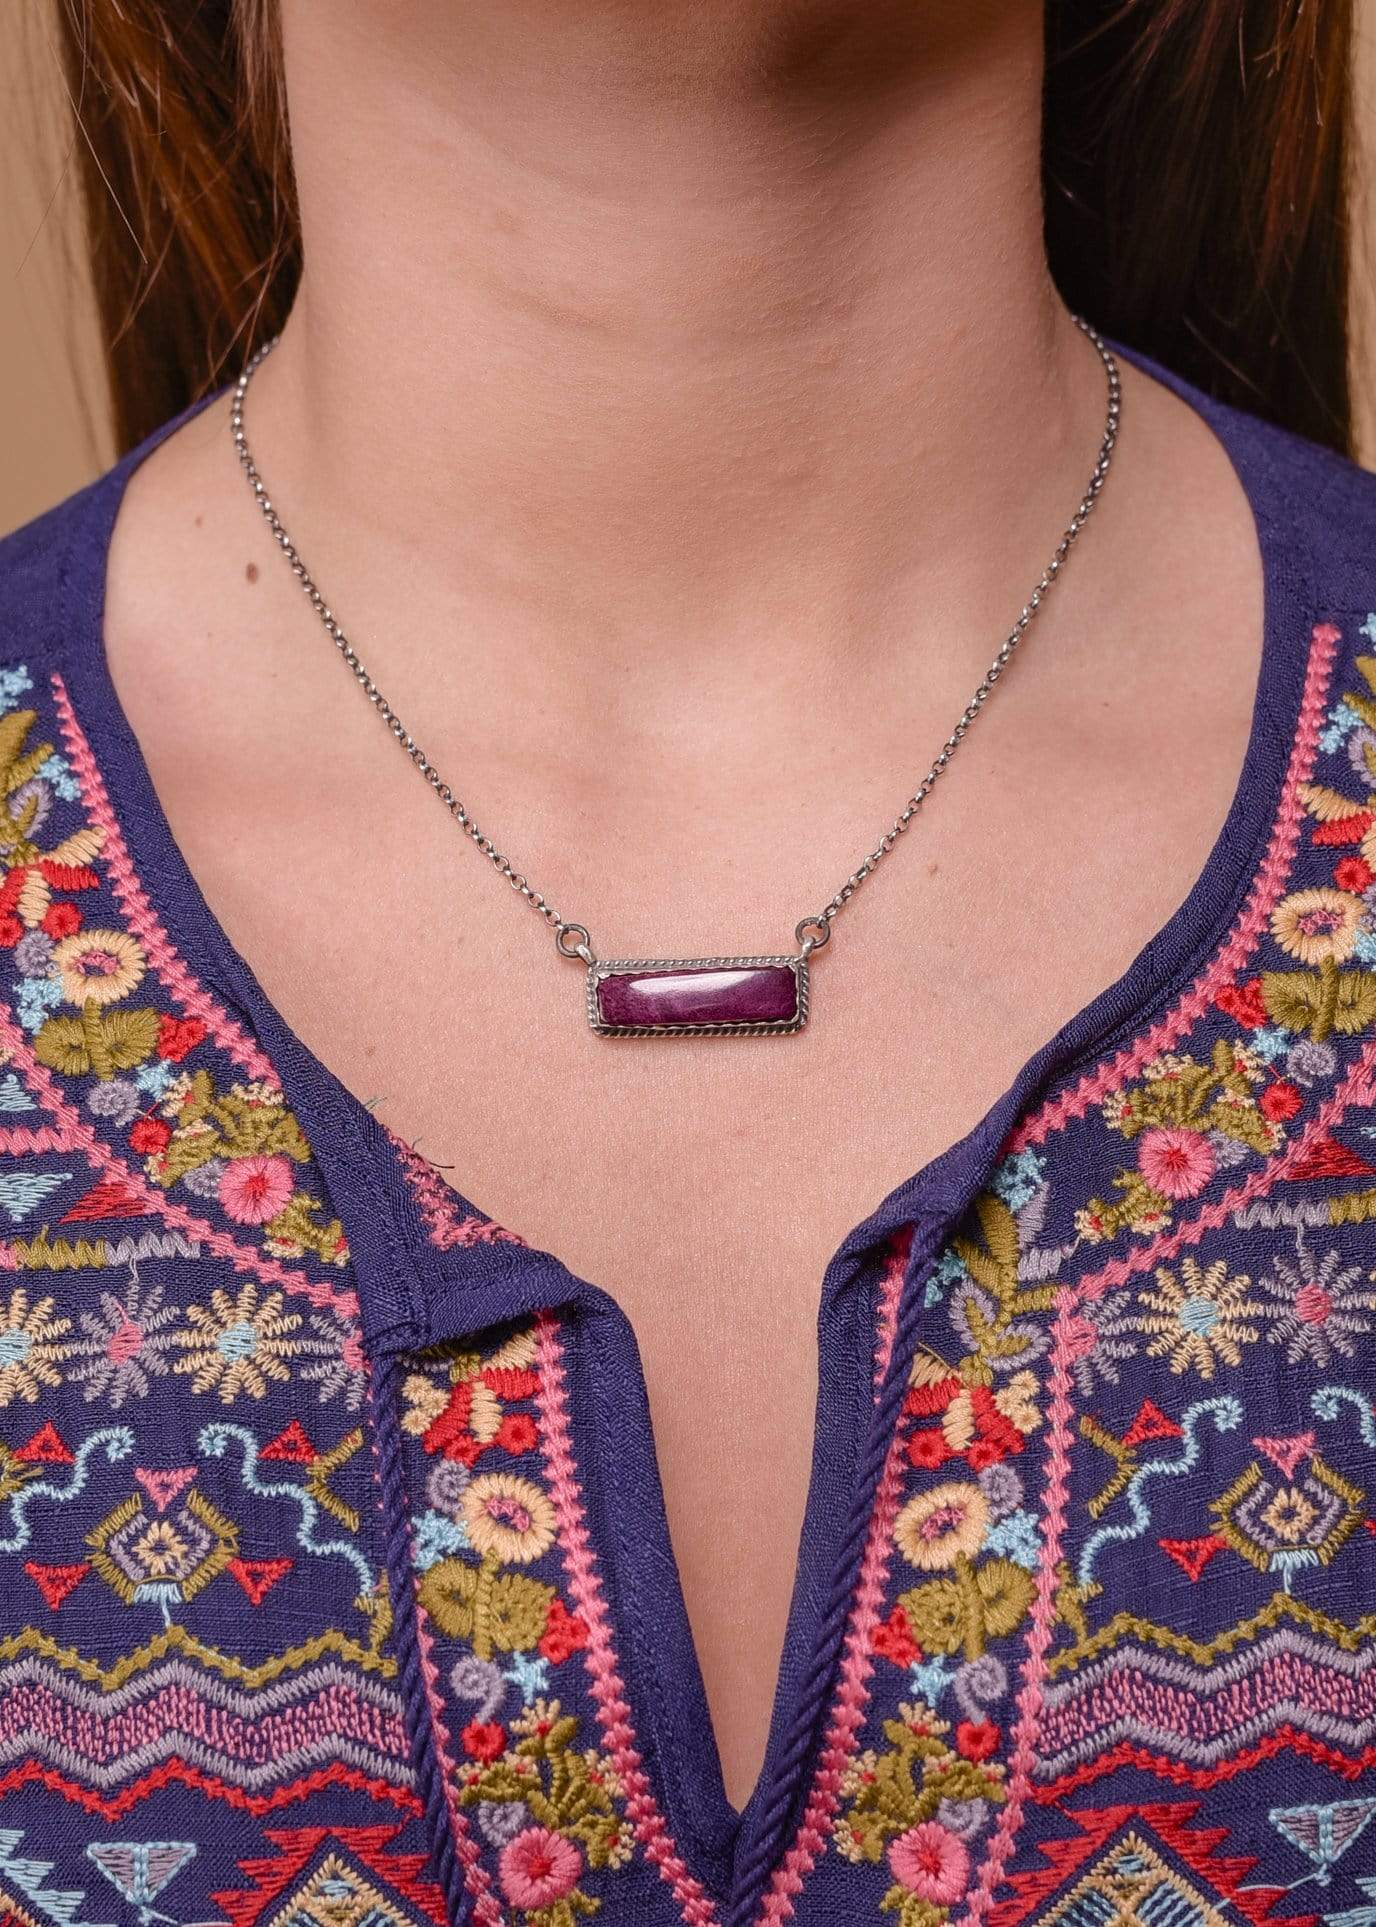 Accessorize In Style Sterling Necklaces Purple Spiny Oyster Bar Necklace - Small